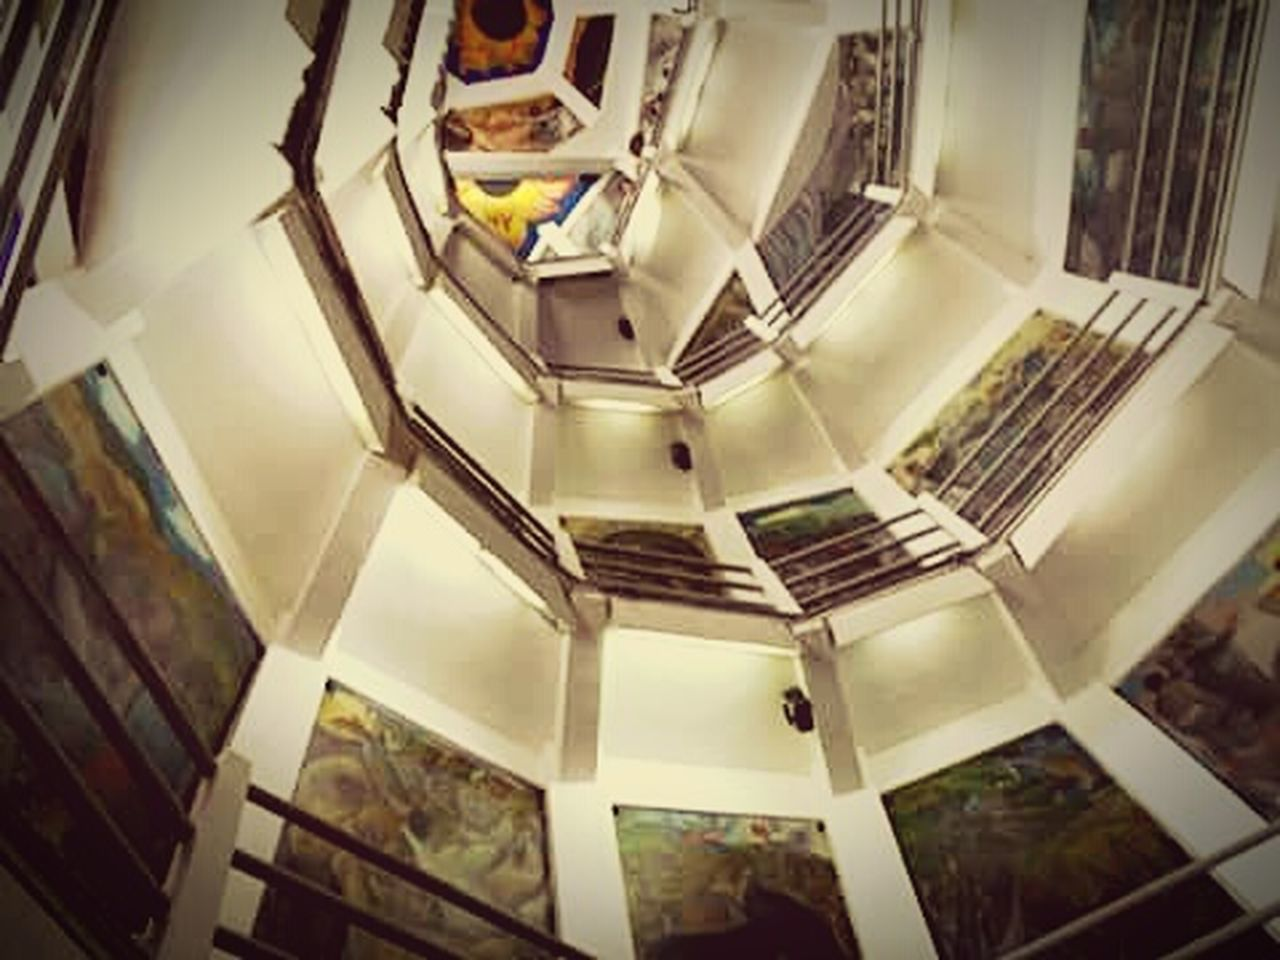 staircase, steps and staircases, architecture, steps, indoors, railing, high angle view, built structure, spiral staircase, no people, futuristic, day